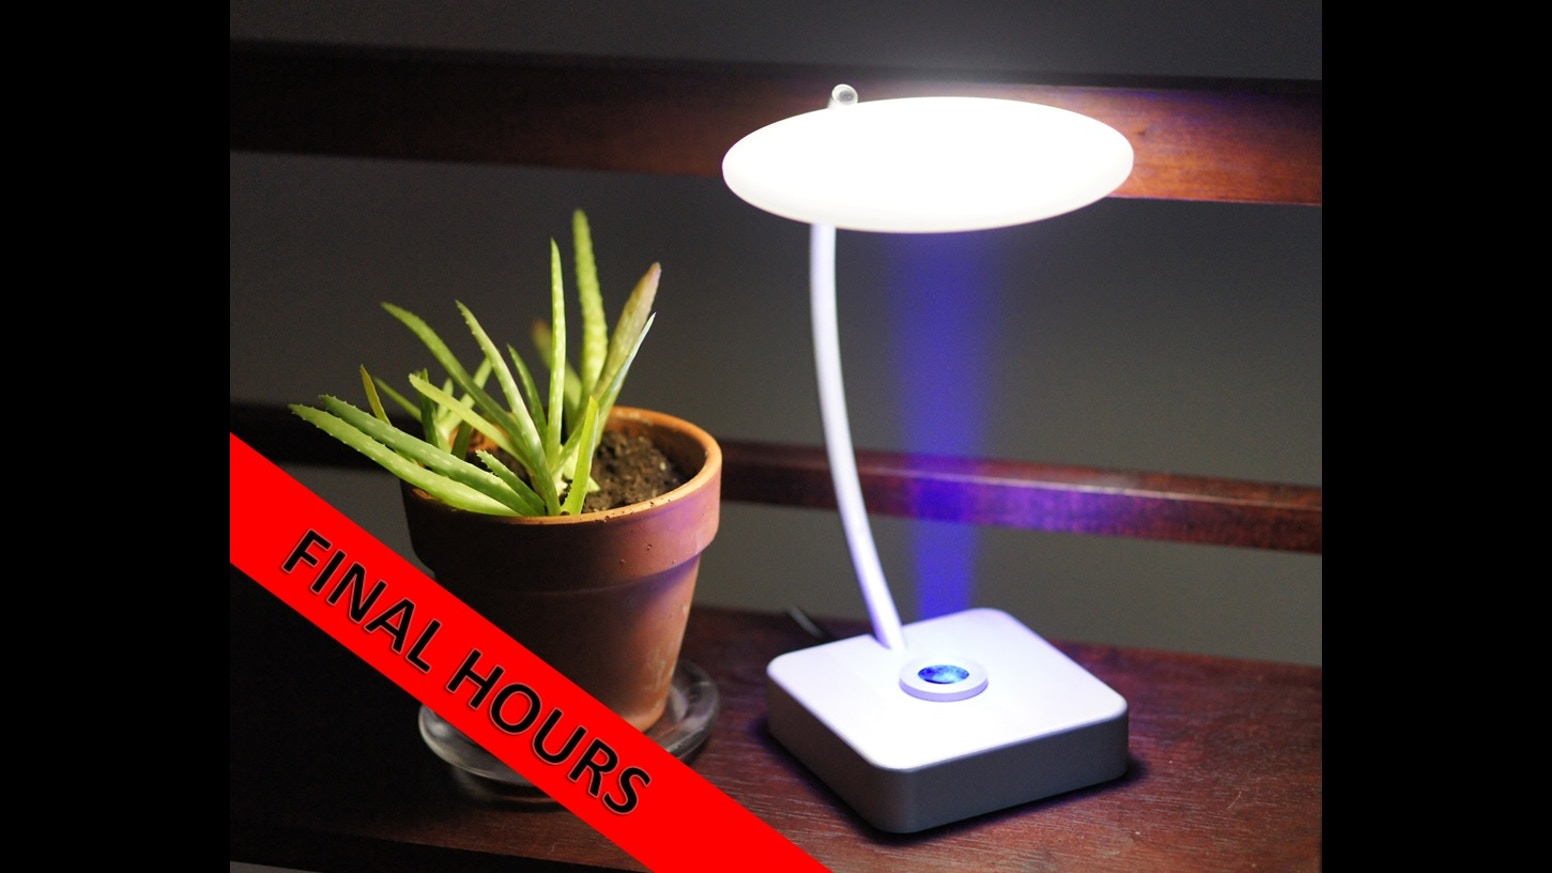 Led night light kickstarter - A Simple Touch Lamp Fixture That Uses Advanced Led Technology